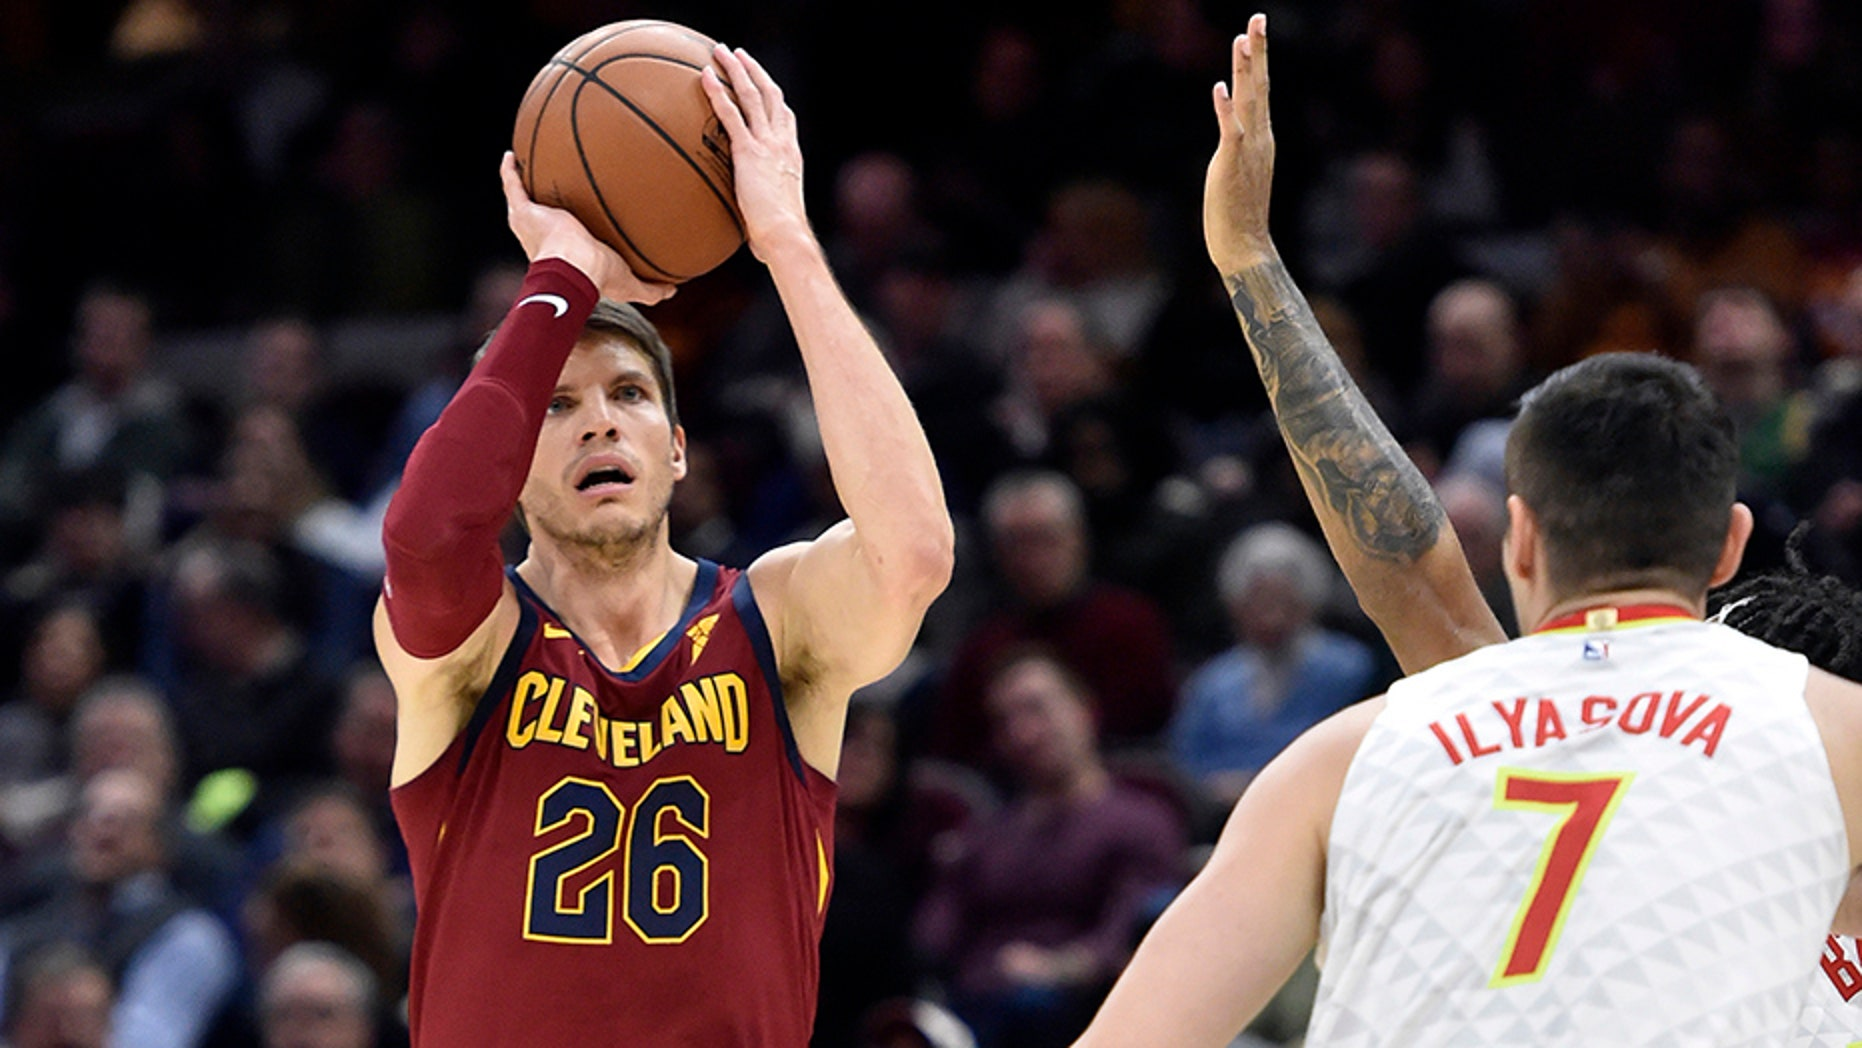 The younger brother of Cleveland Cavaliers guard Kyle Korver (26) passed away of an undisclosed illness.